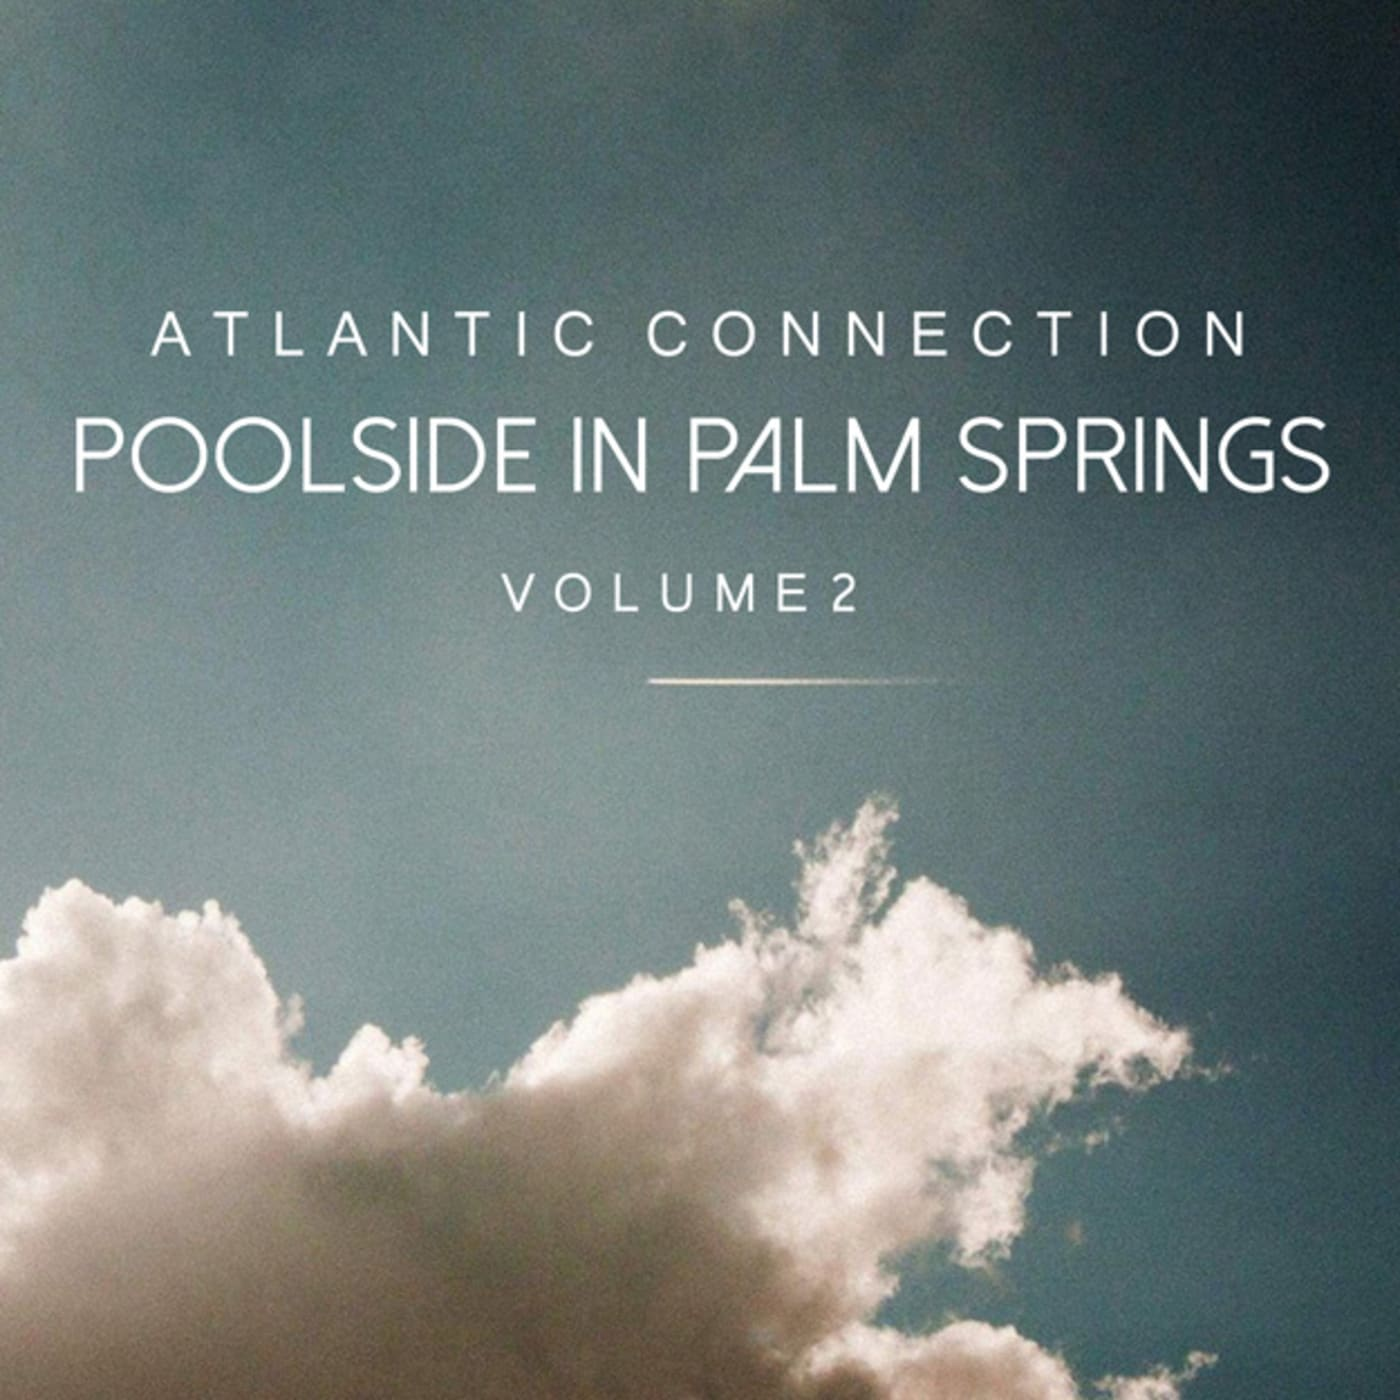 poolside in palm springs vol2 cover